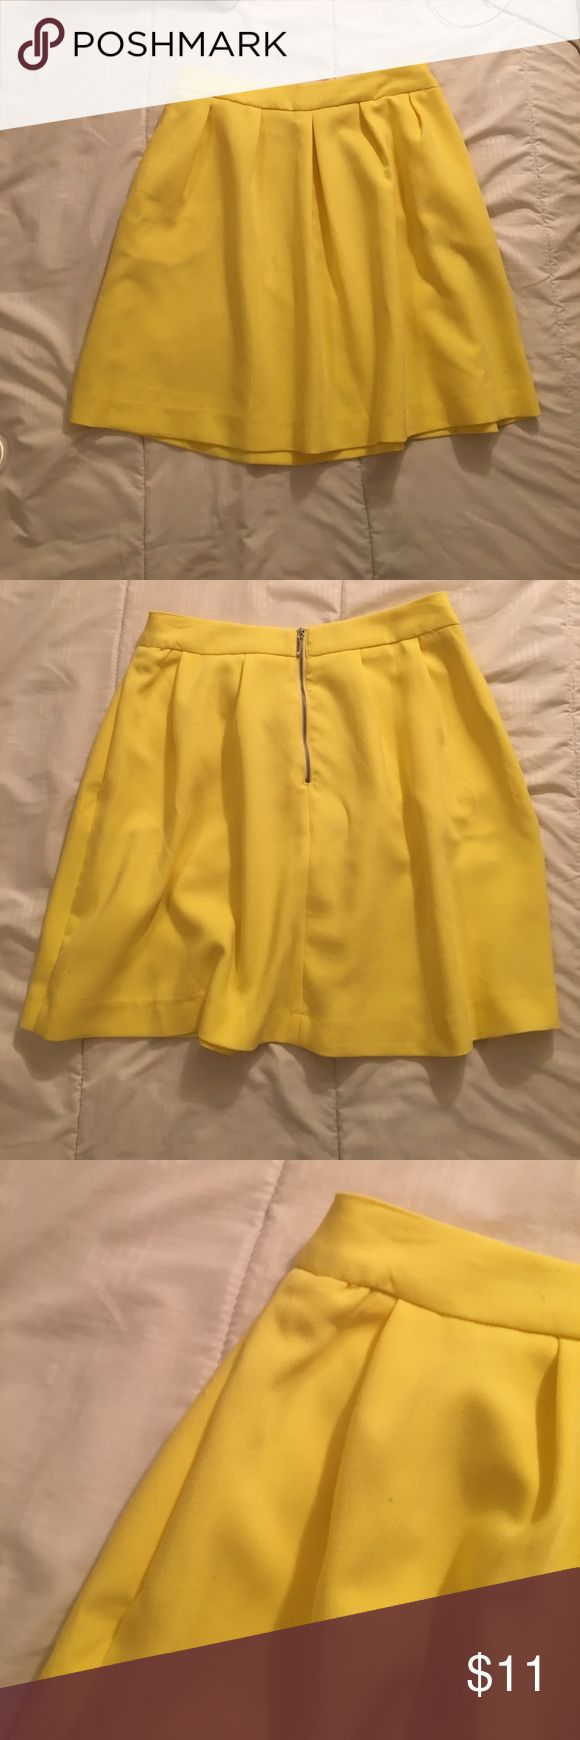 Yellow skirt Yellow skirt perfect for the summer. 33 cm waist size. 44 cm length. Worn one time. Perfect condition other than the tiny blue mark shown on the last picture above. stradivarius Skirts Mini